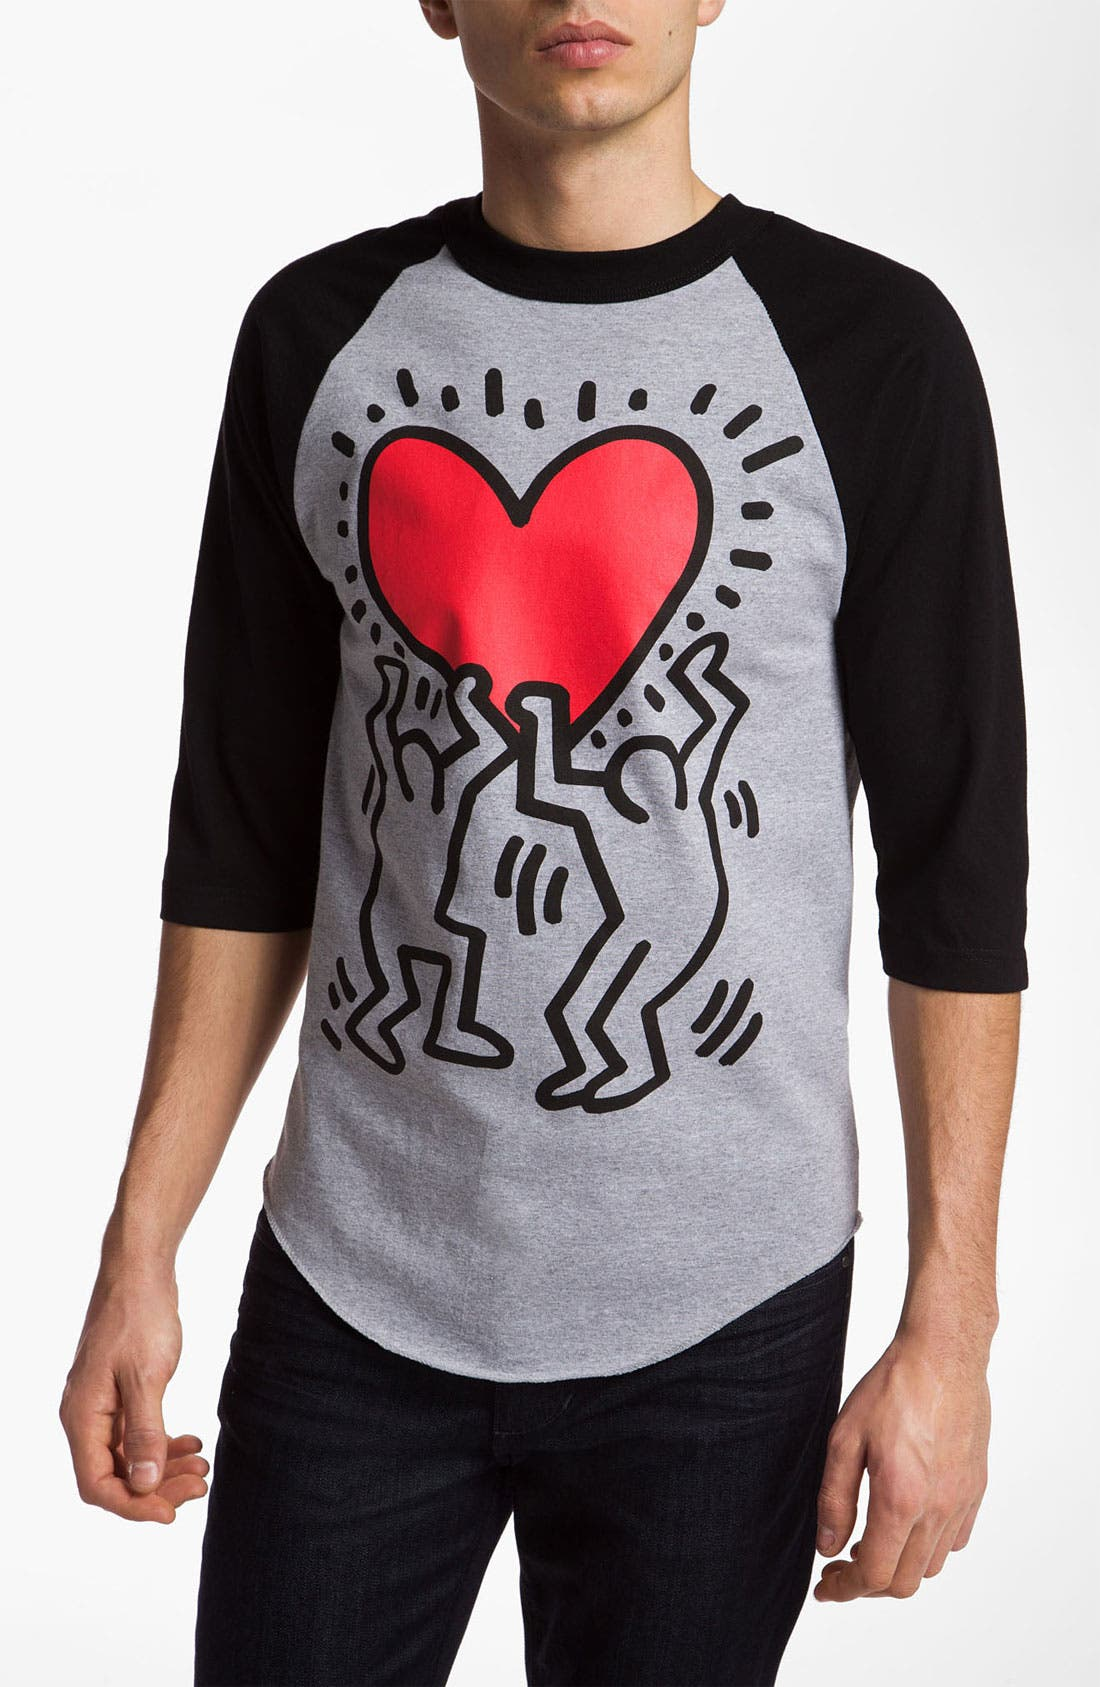 Alternate Image 1 Selected - Obey 'Haring Heart' Graphic Baseball T-Shirt